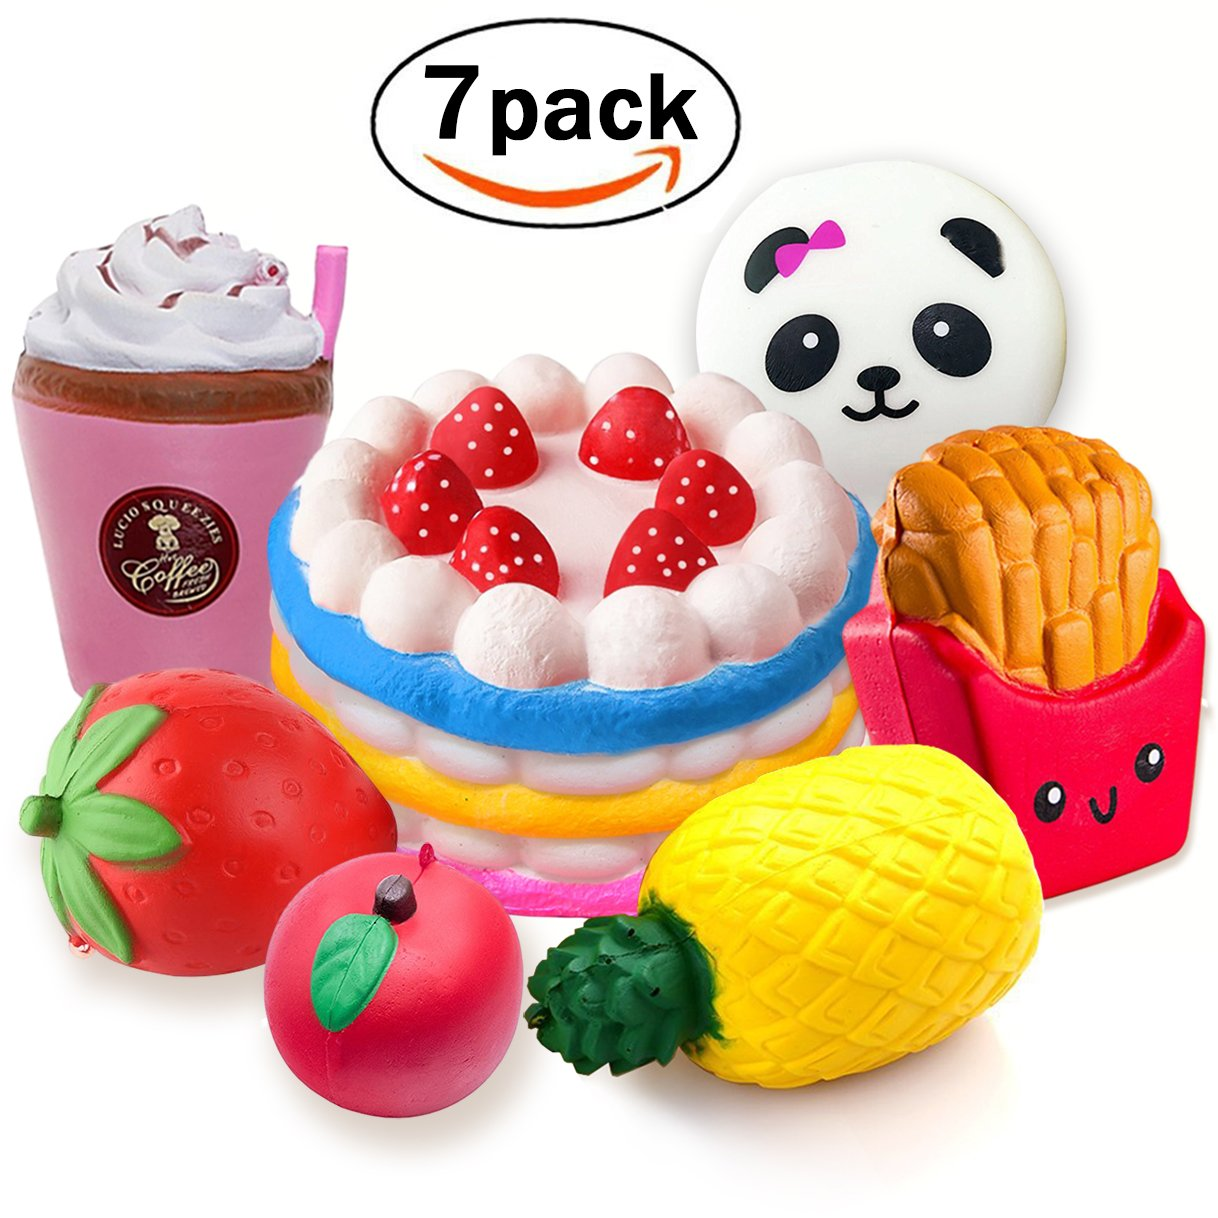 7 Pack Squishies Jumbo Mini kawaii Slow Rising Soft Toys Strawberry Cake Pineapple apple Panda French Fries Mini Strawberry Ice Cream Cup Stress Relief Squeeze For Kids Or Adults Party Favor Thanksgiving Christmas Birthday Gift Jeferym